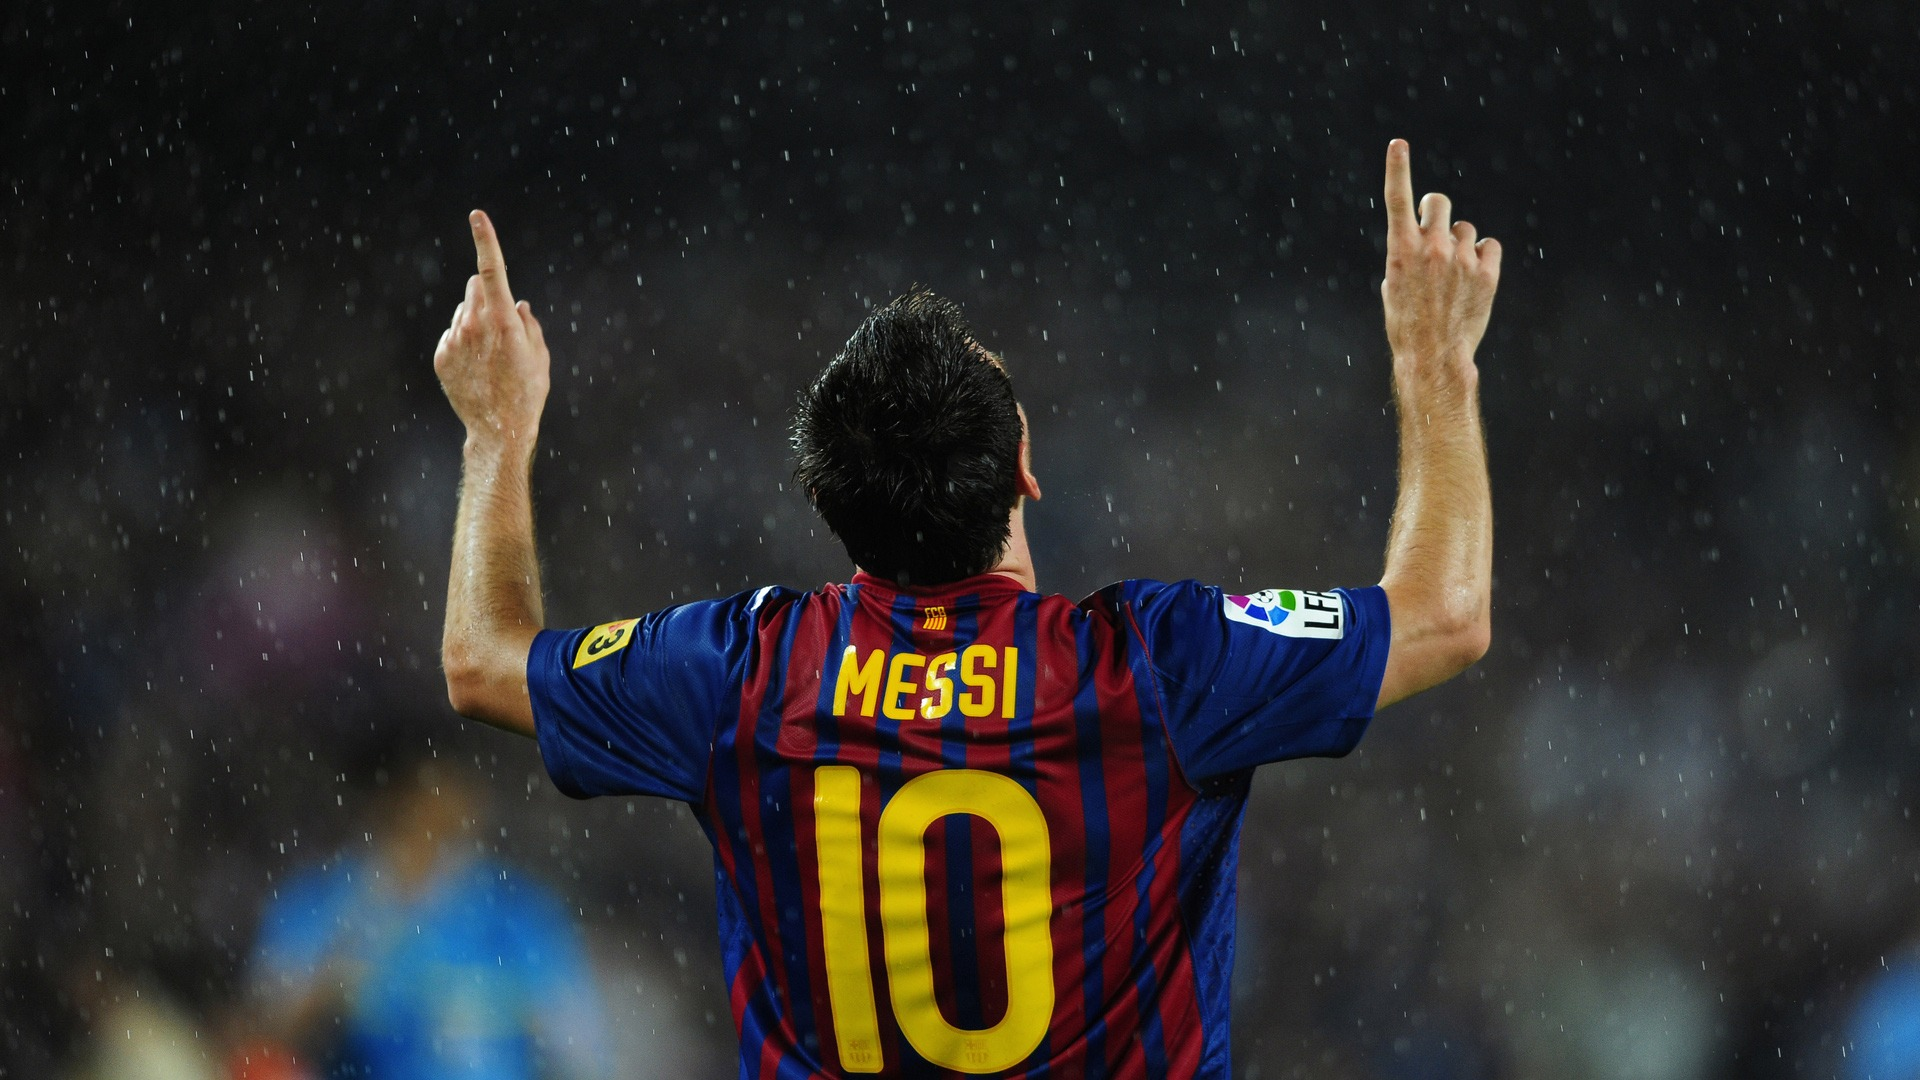 Messi Wallpaper No 10